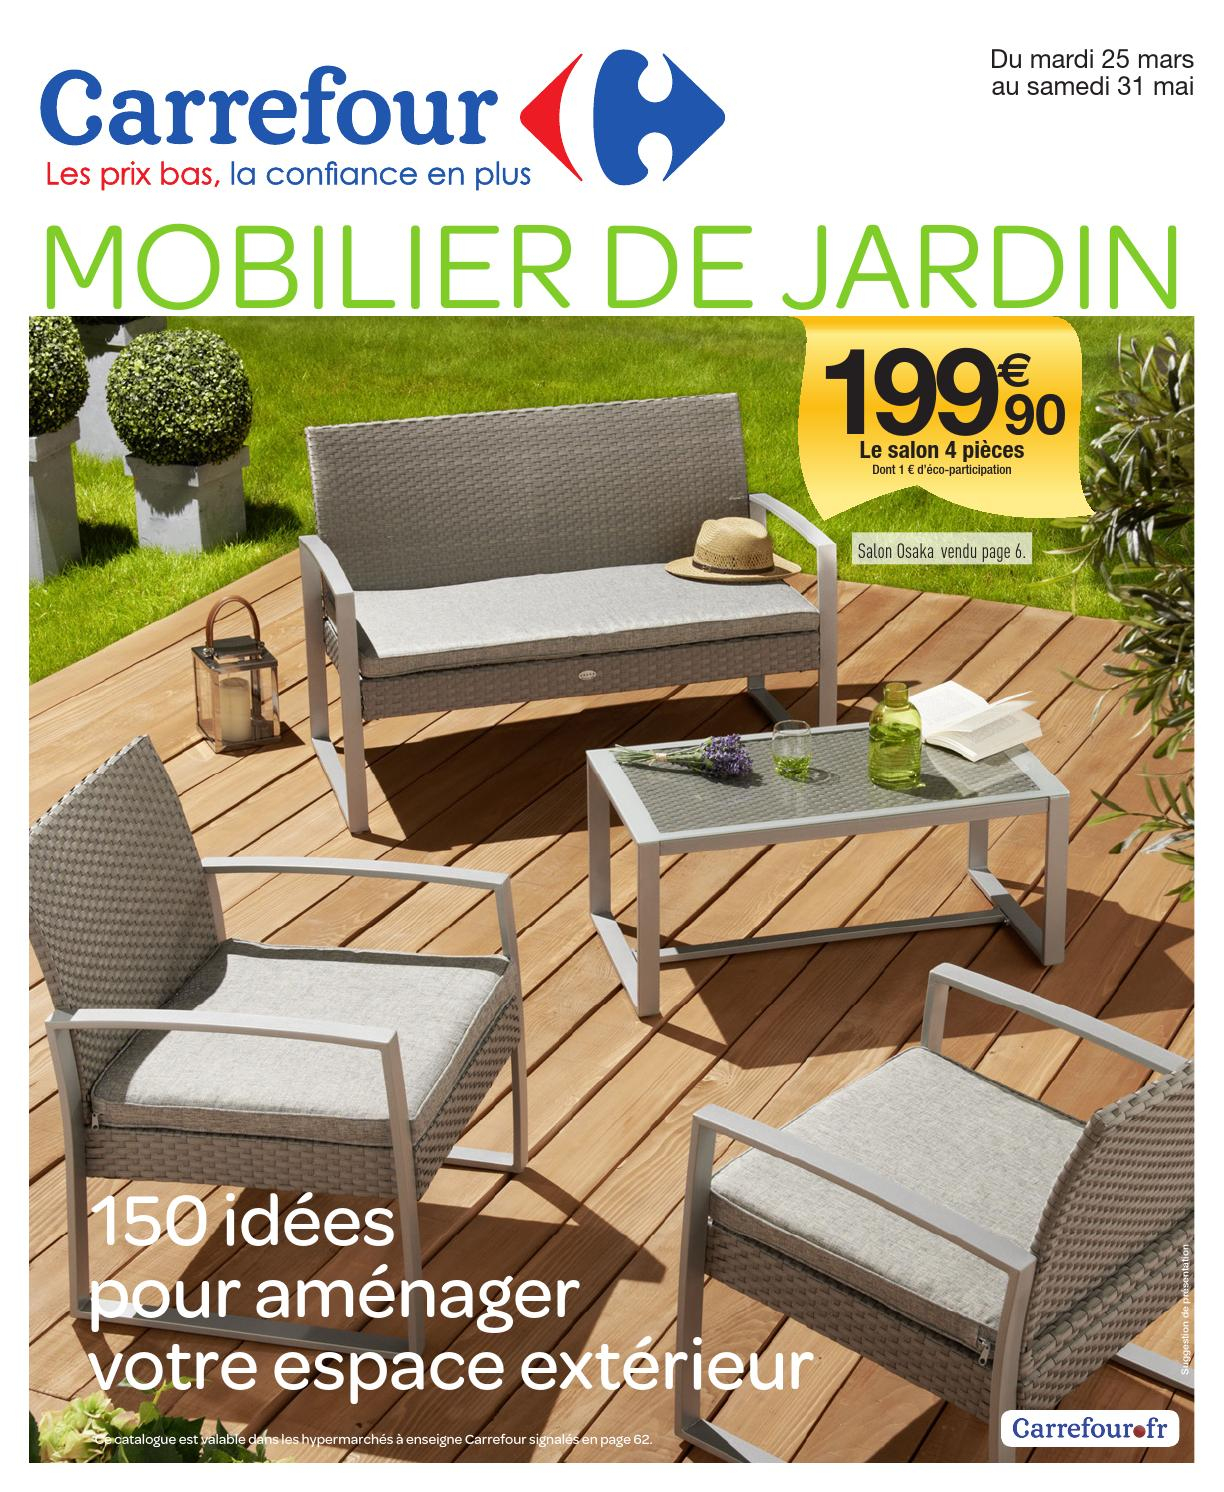 Catalogue Carrefour - 25.03-31.05.2014 By Joe Monroe - Issuu destiné Tonnelle De Jardin Carrefour